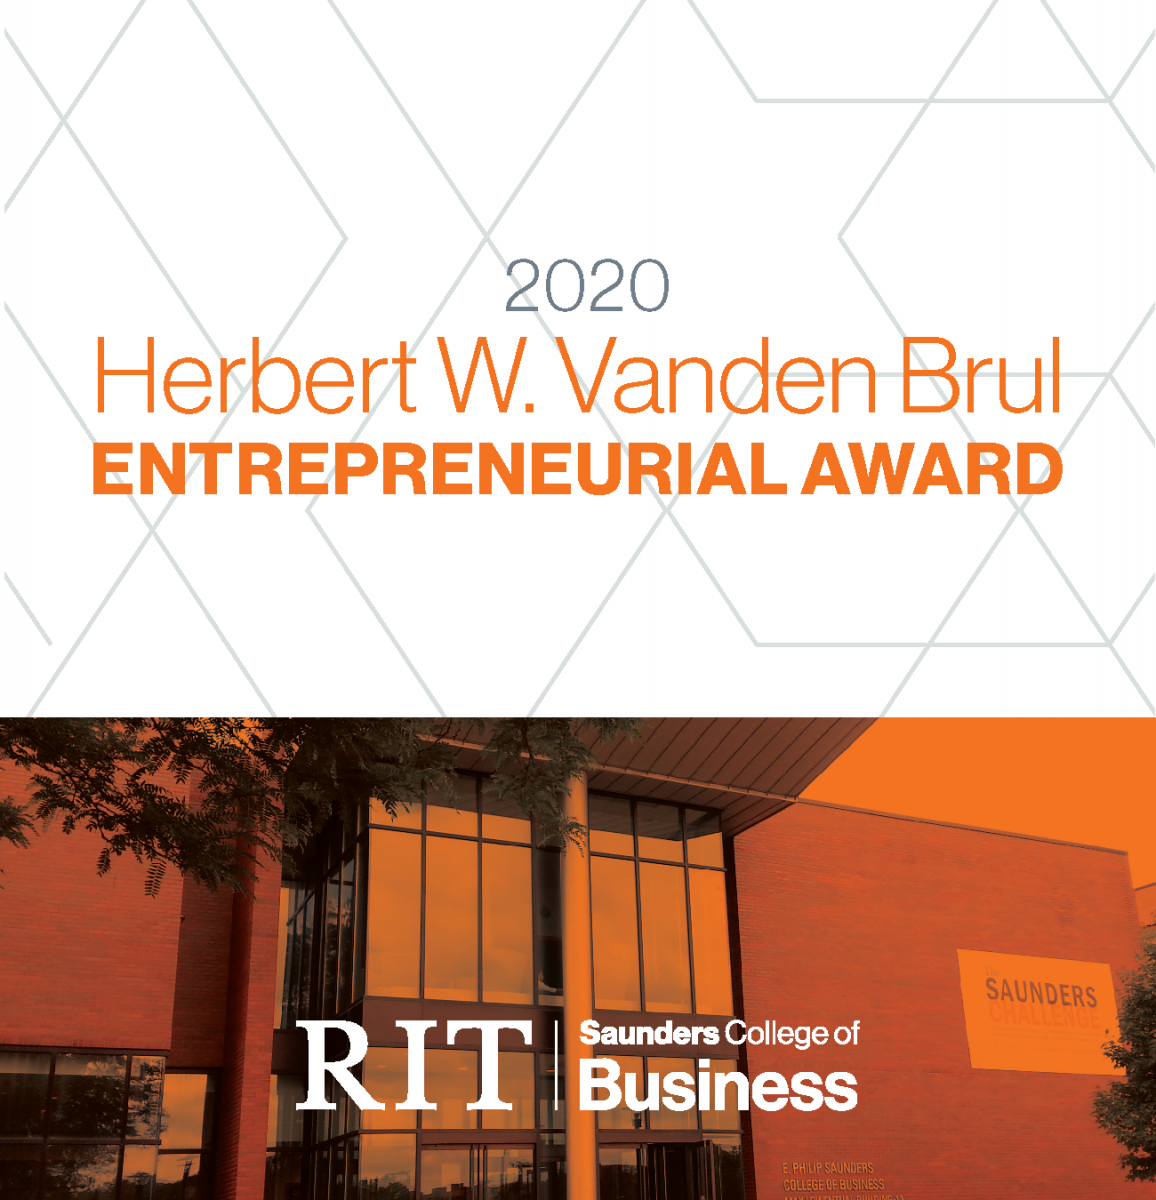 2020 Herbert W. Vanden Brul Award Program